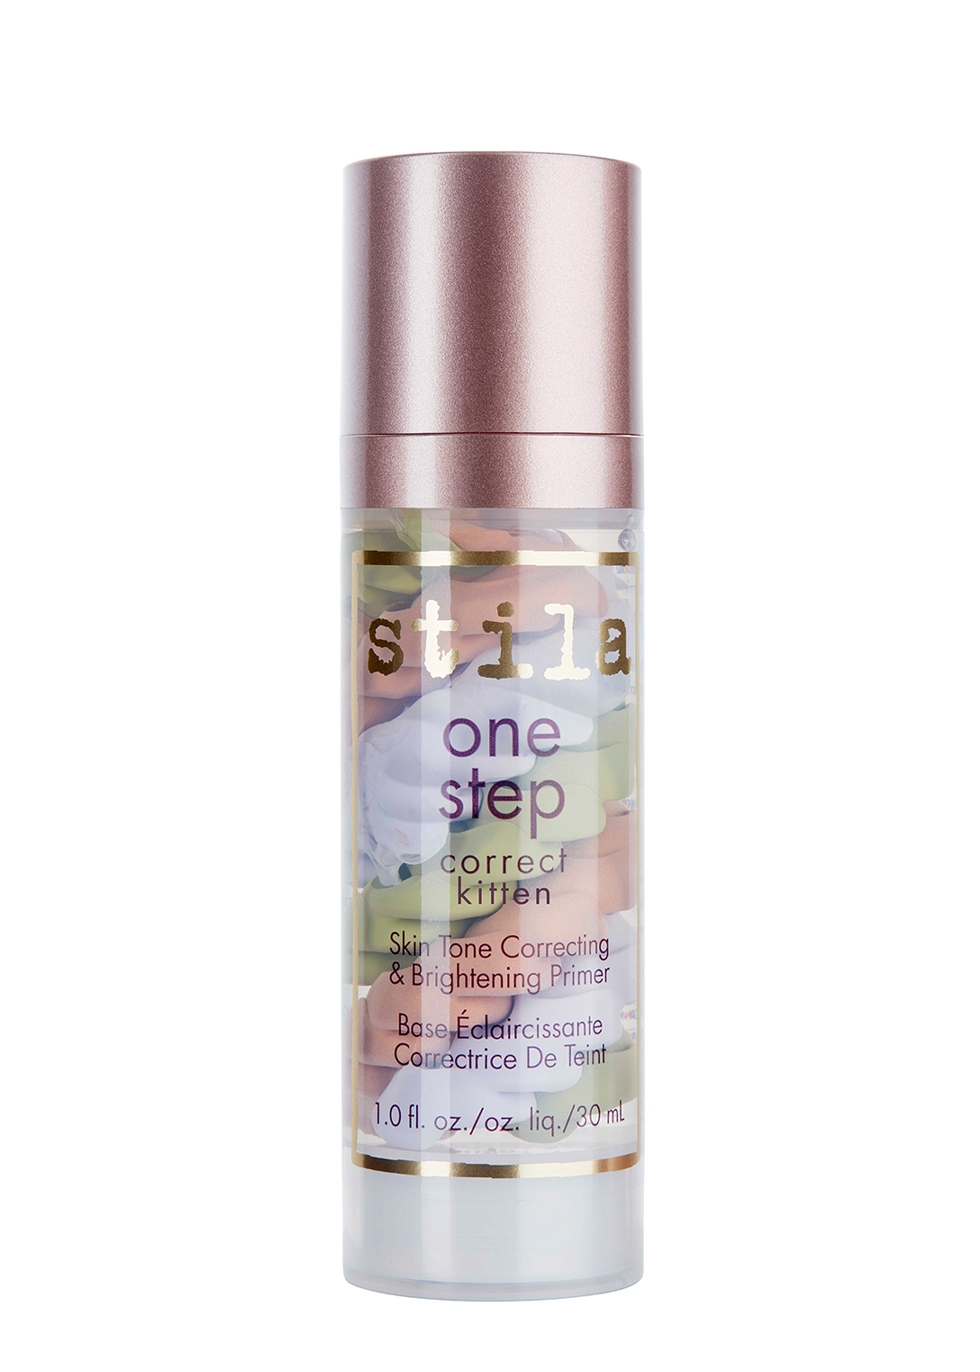 One Step Correct Kitten Skin Tone Correcting & Brightening Primer